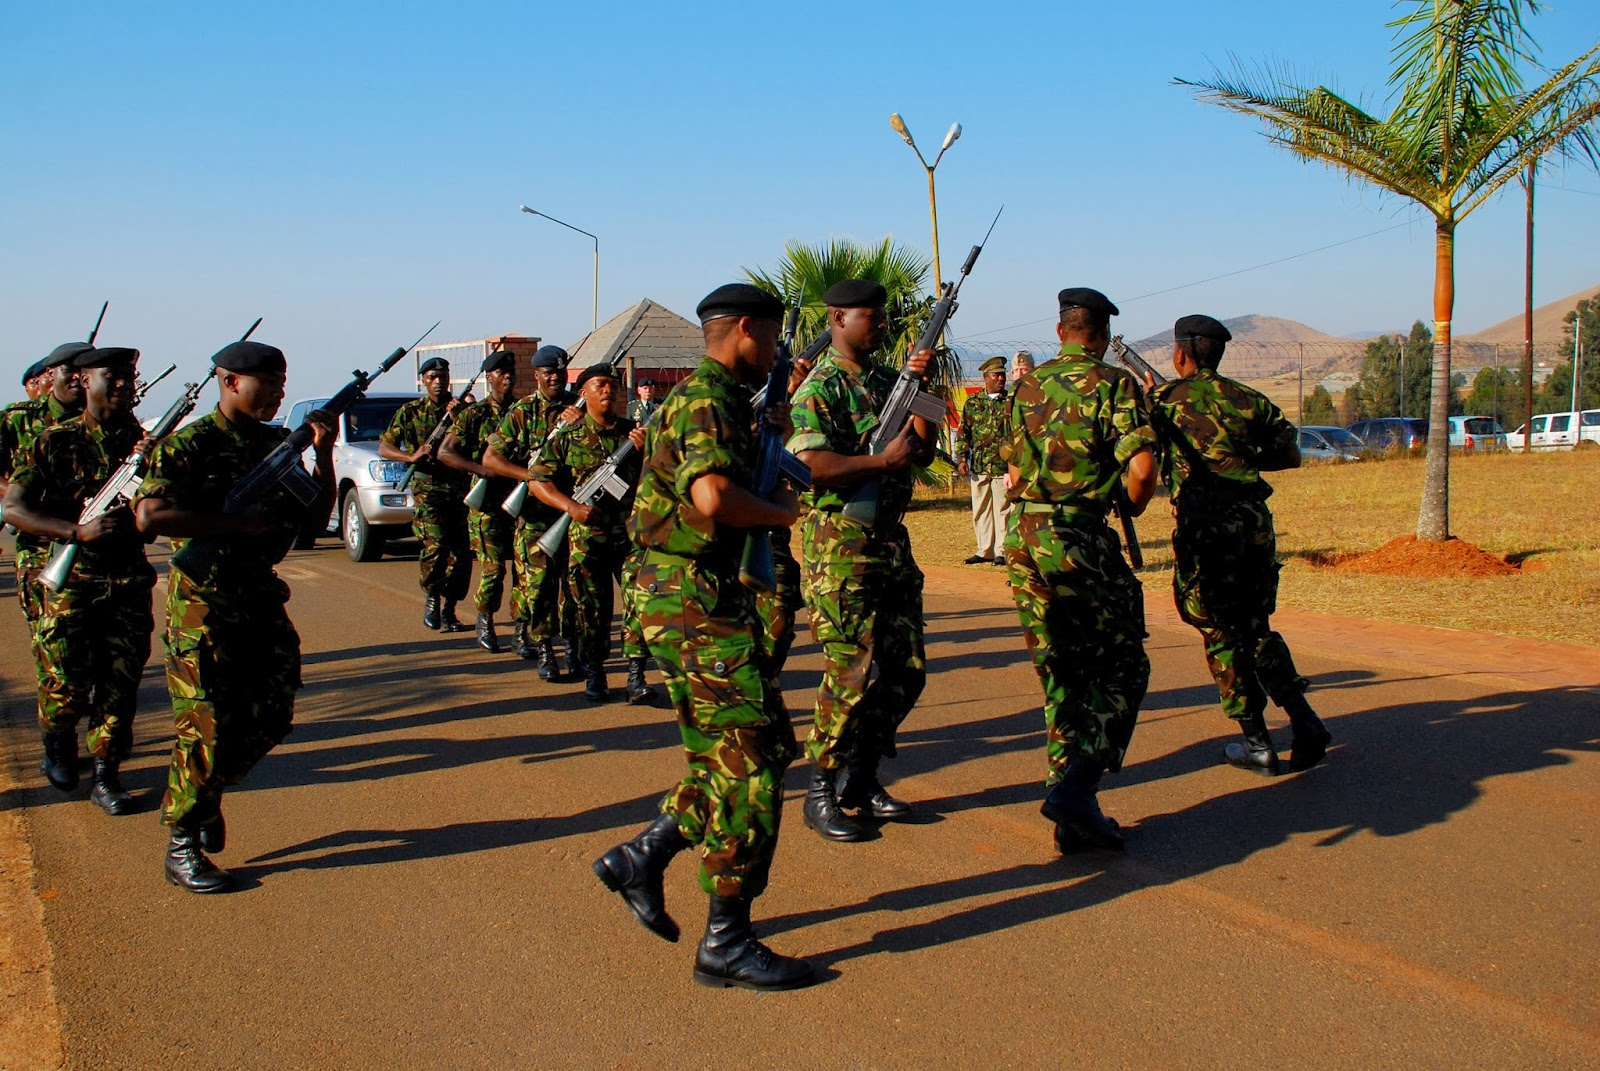 World Military and Police Forces: Eswatini